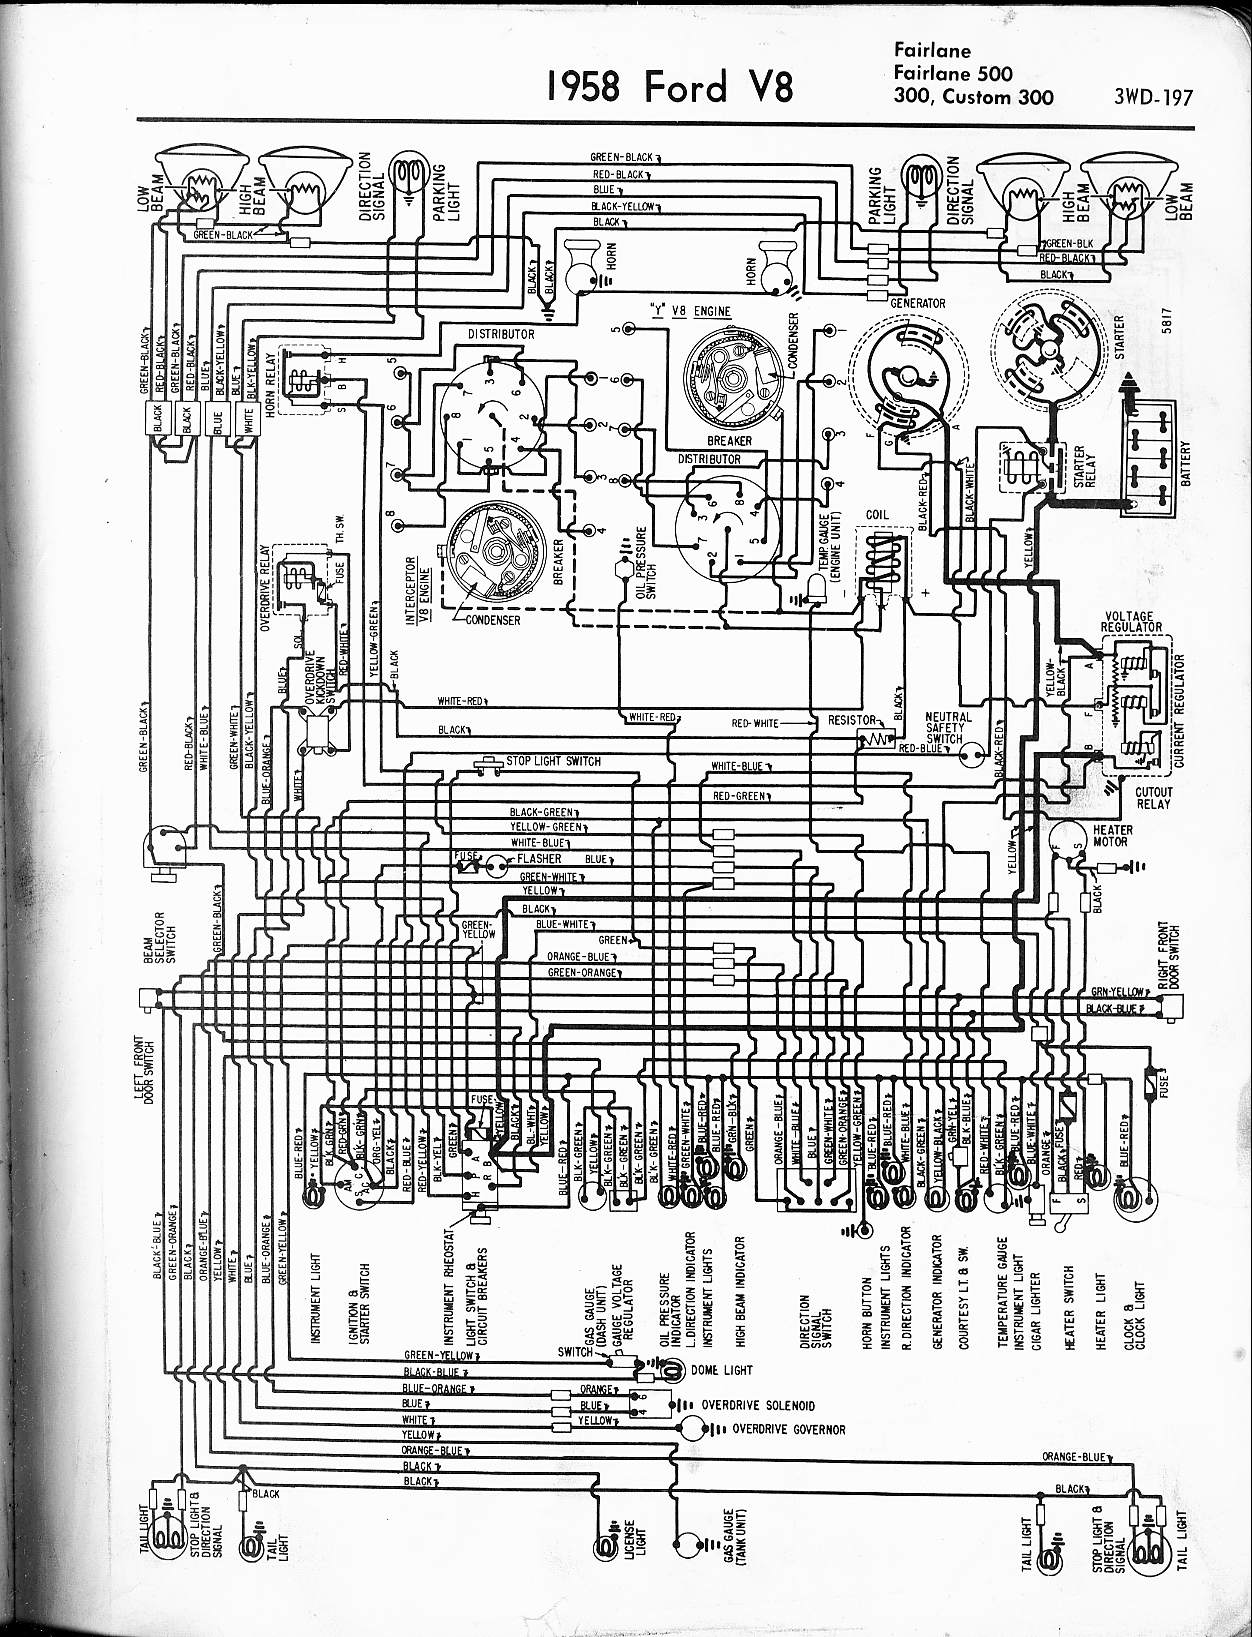 MWire5765 197 57 65 ford wiring diagrams ford wiring schematics at n-0.co